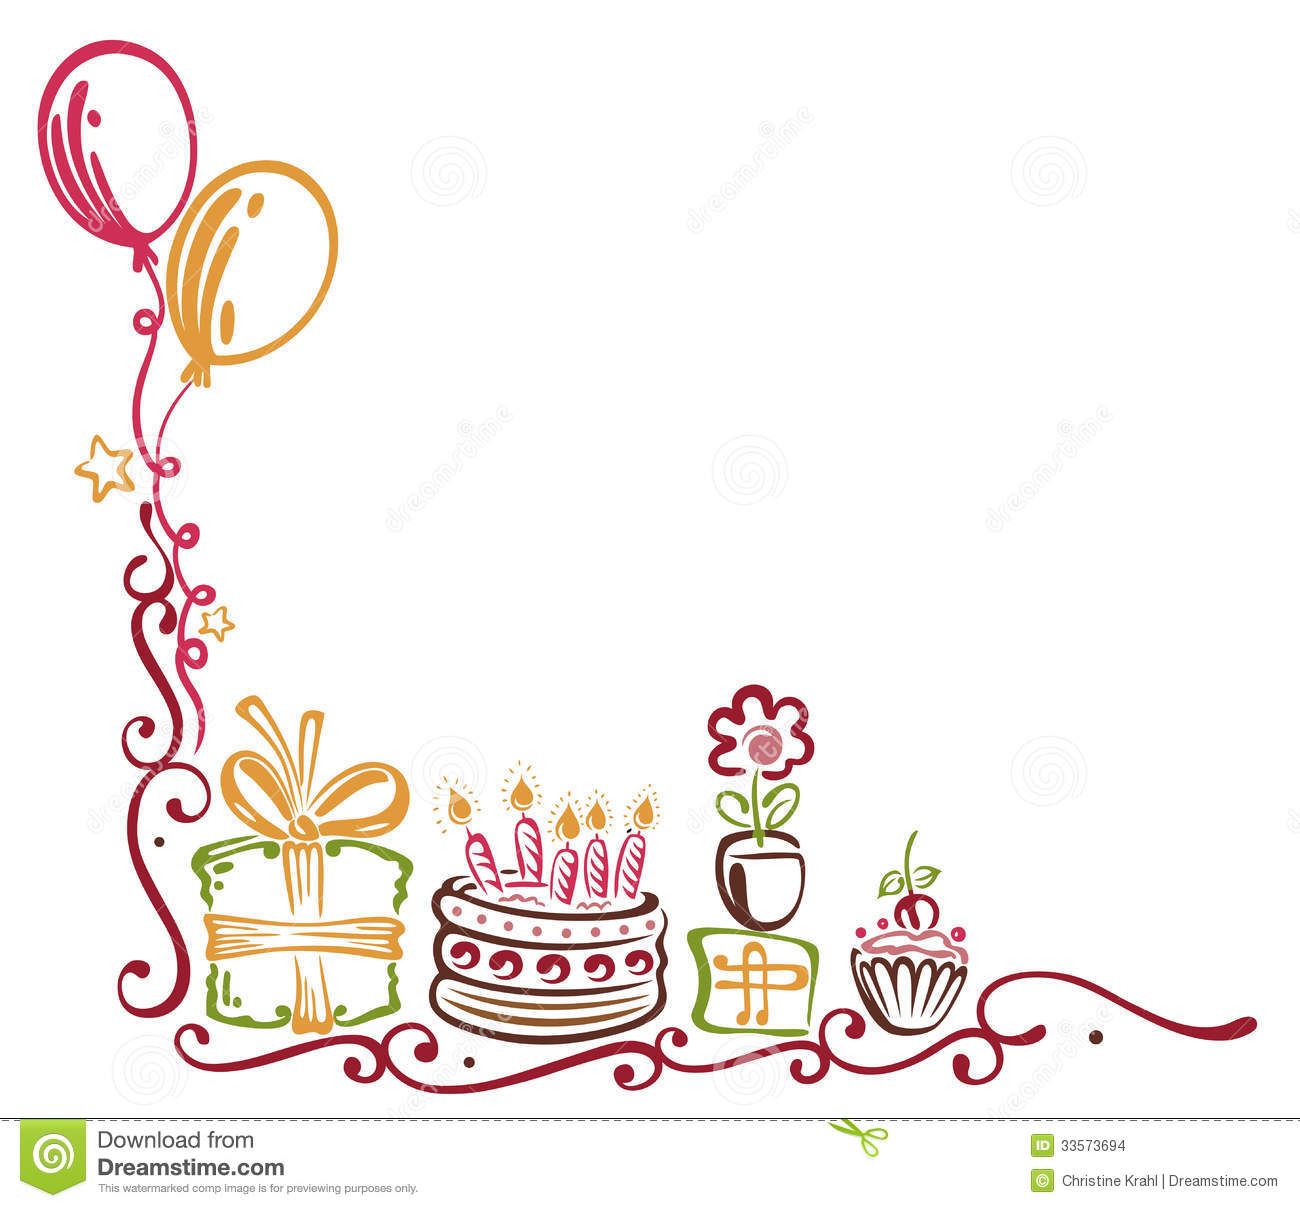 birthday border design ; birthday-border-colorful-tendril-balloons-33573694